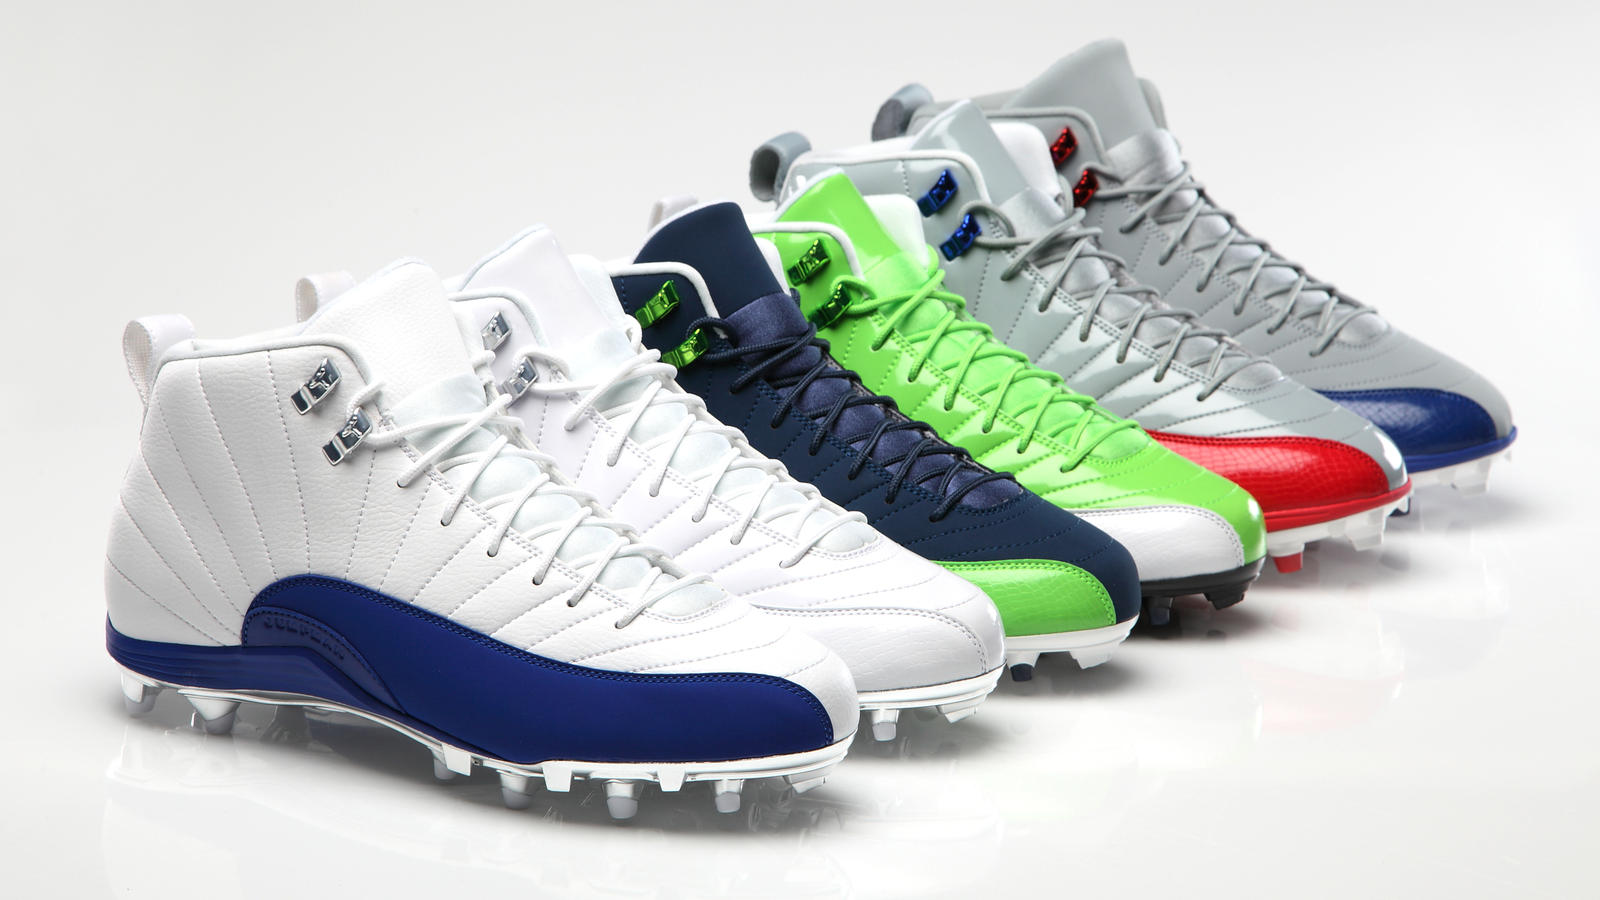 Jordan Brand Football Athletes To Wear Air Jordan Xii Cleats